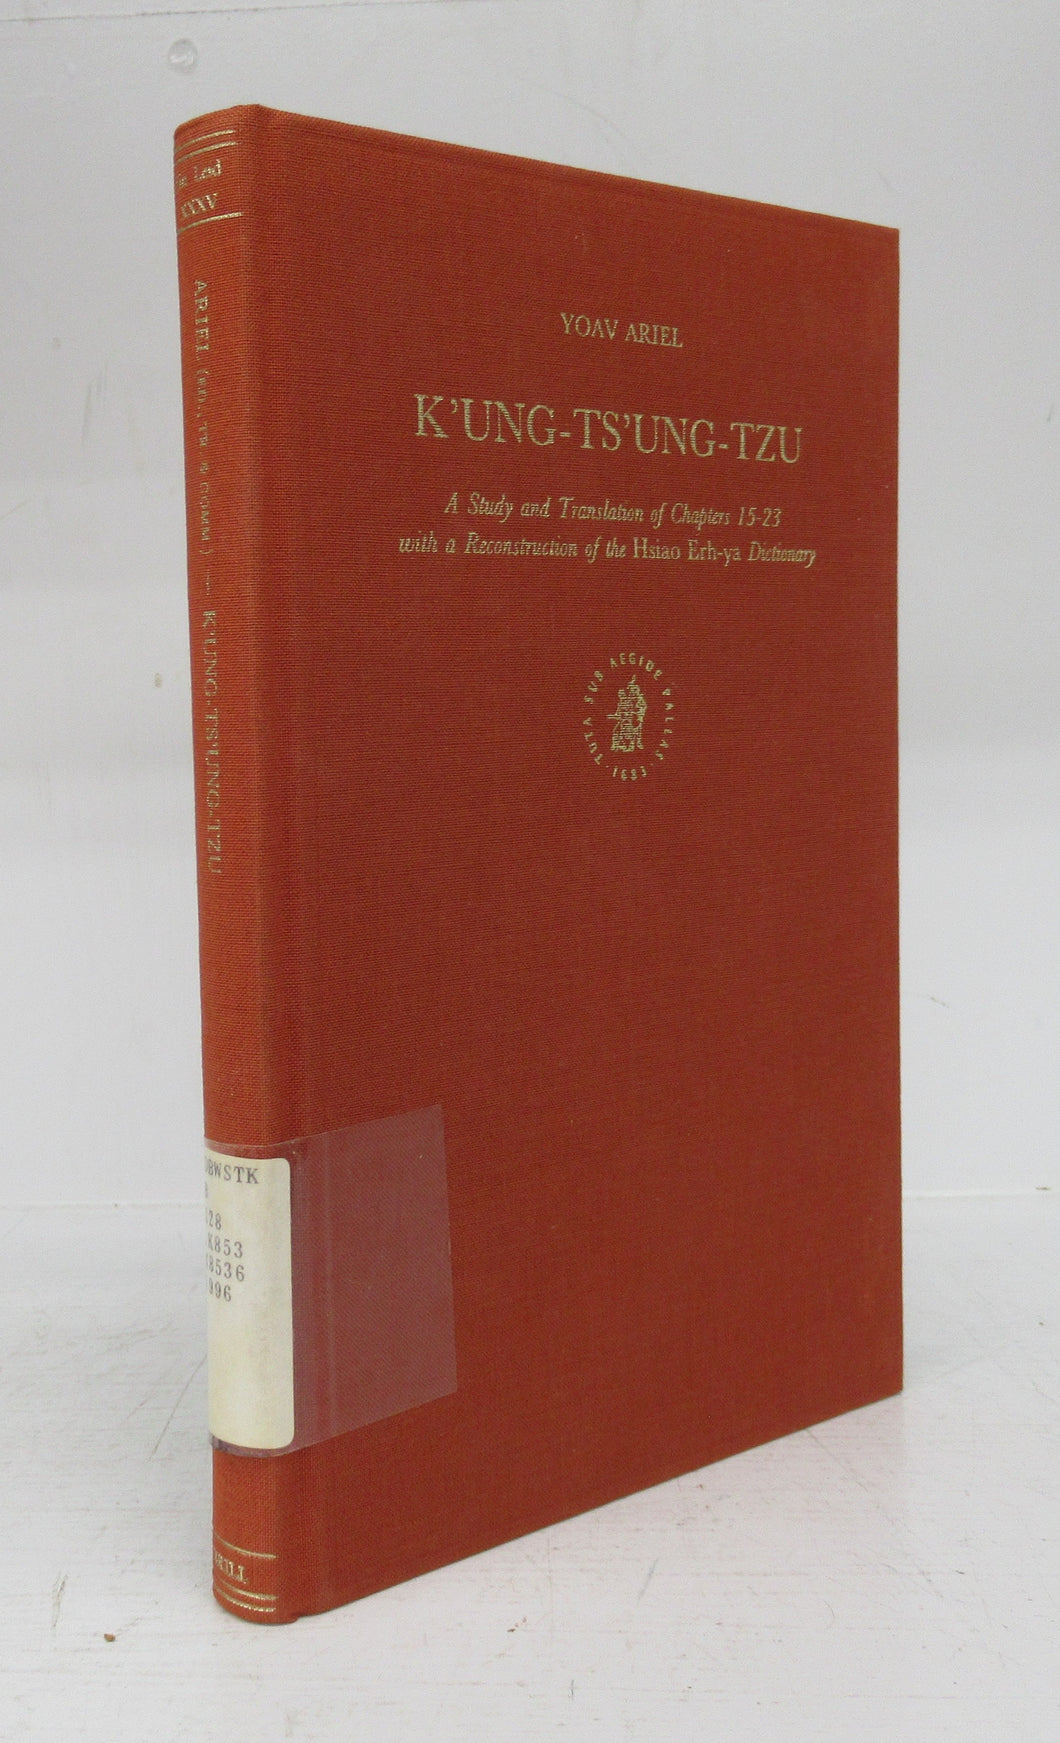 K'Ung-Ts'Ung-Tzu: A Study and Translationof Chapters 15-23 with a Reconstruction of the Hsiao Erh-ya Dictionary